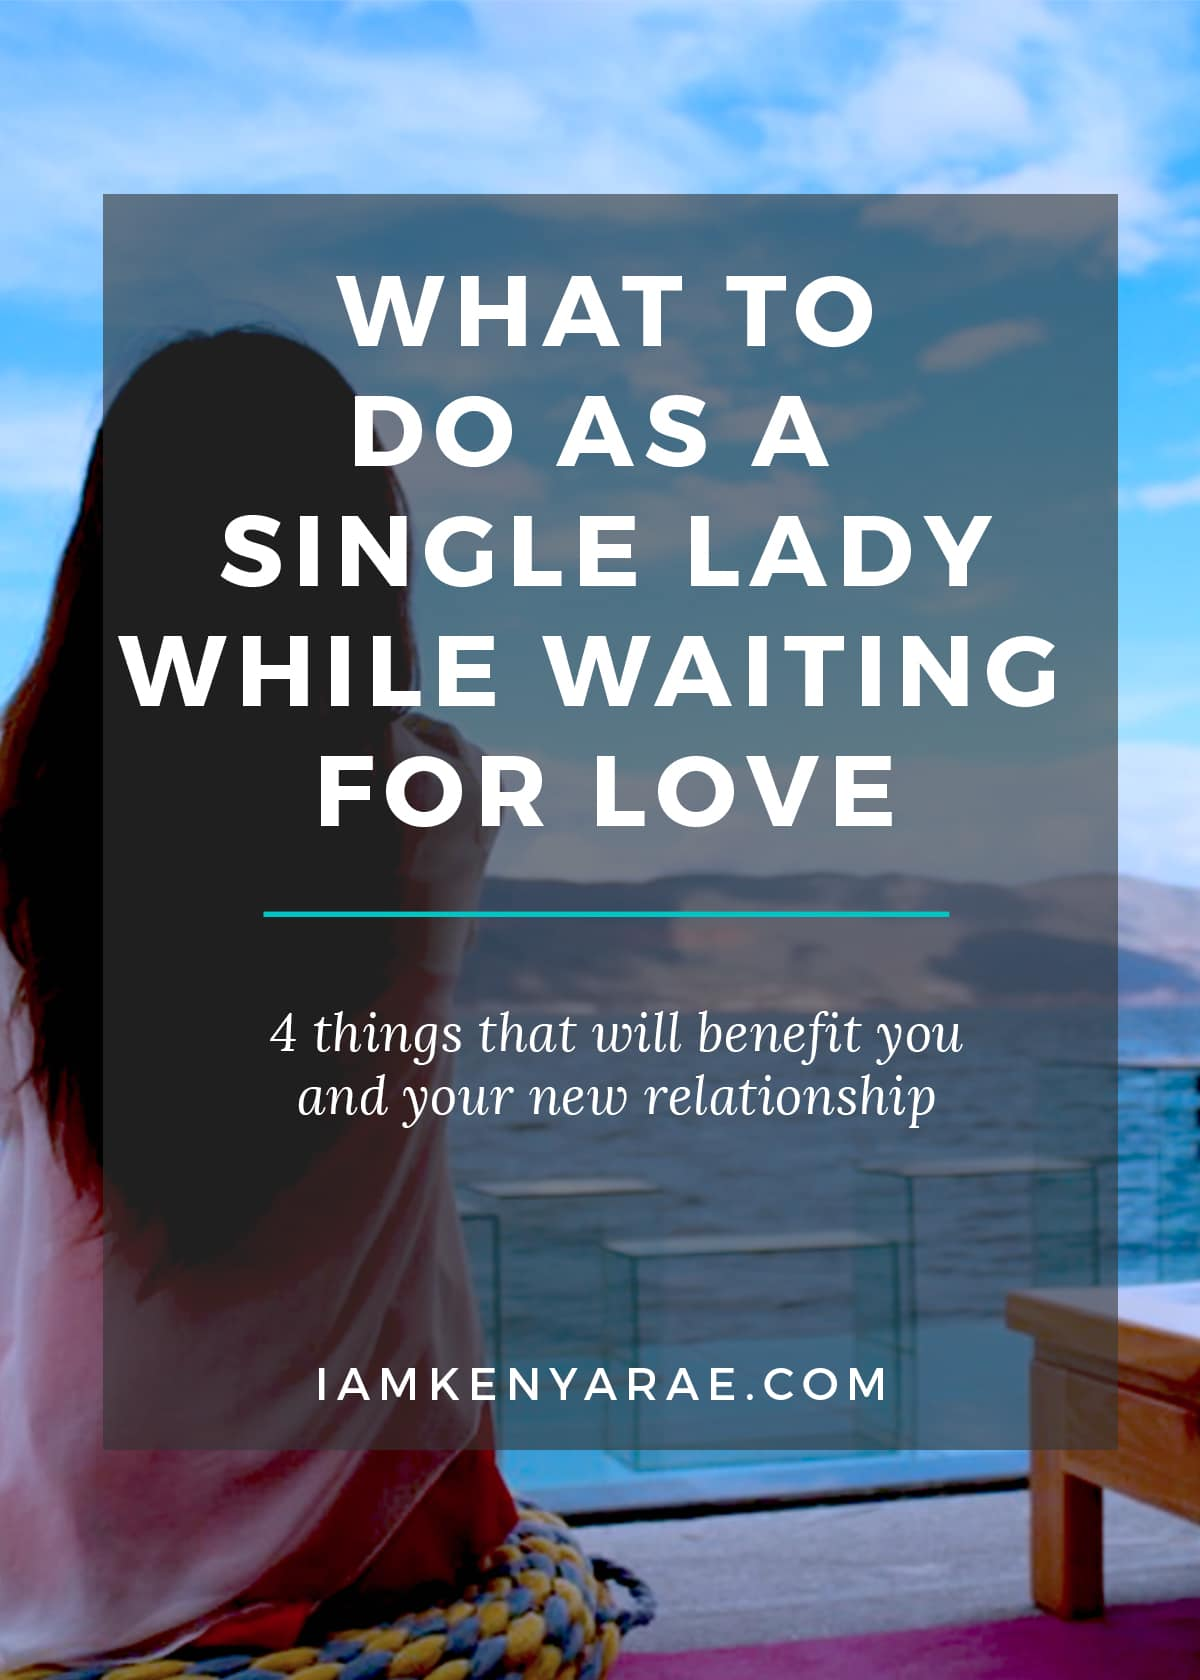 4 THINGS A SINGLE LADY CAN DO UNTIL LOVE ARRIVES